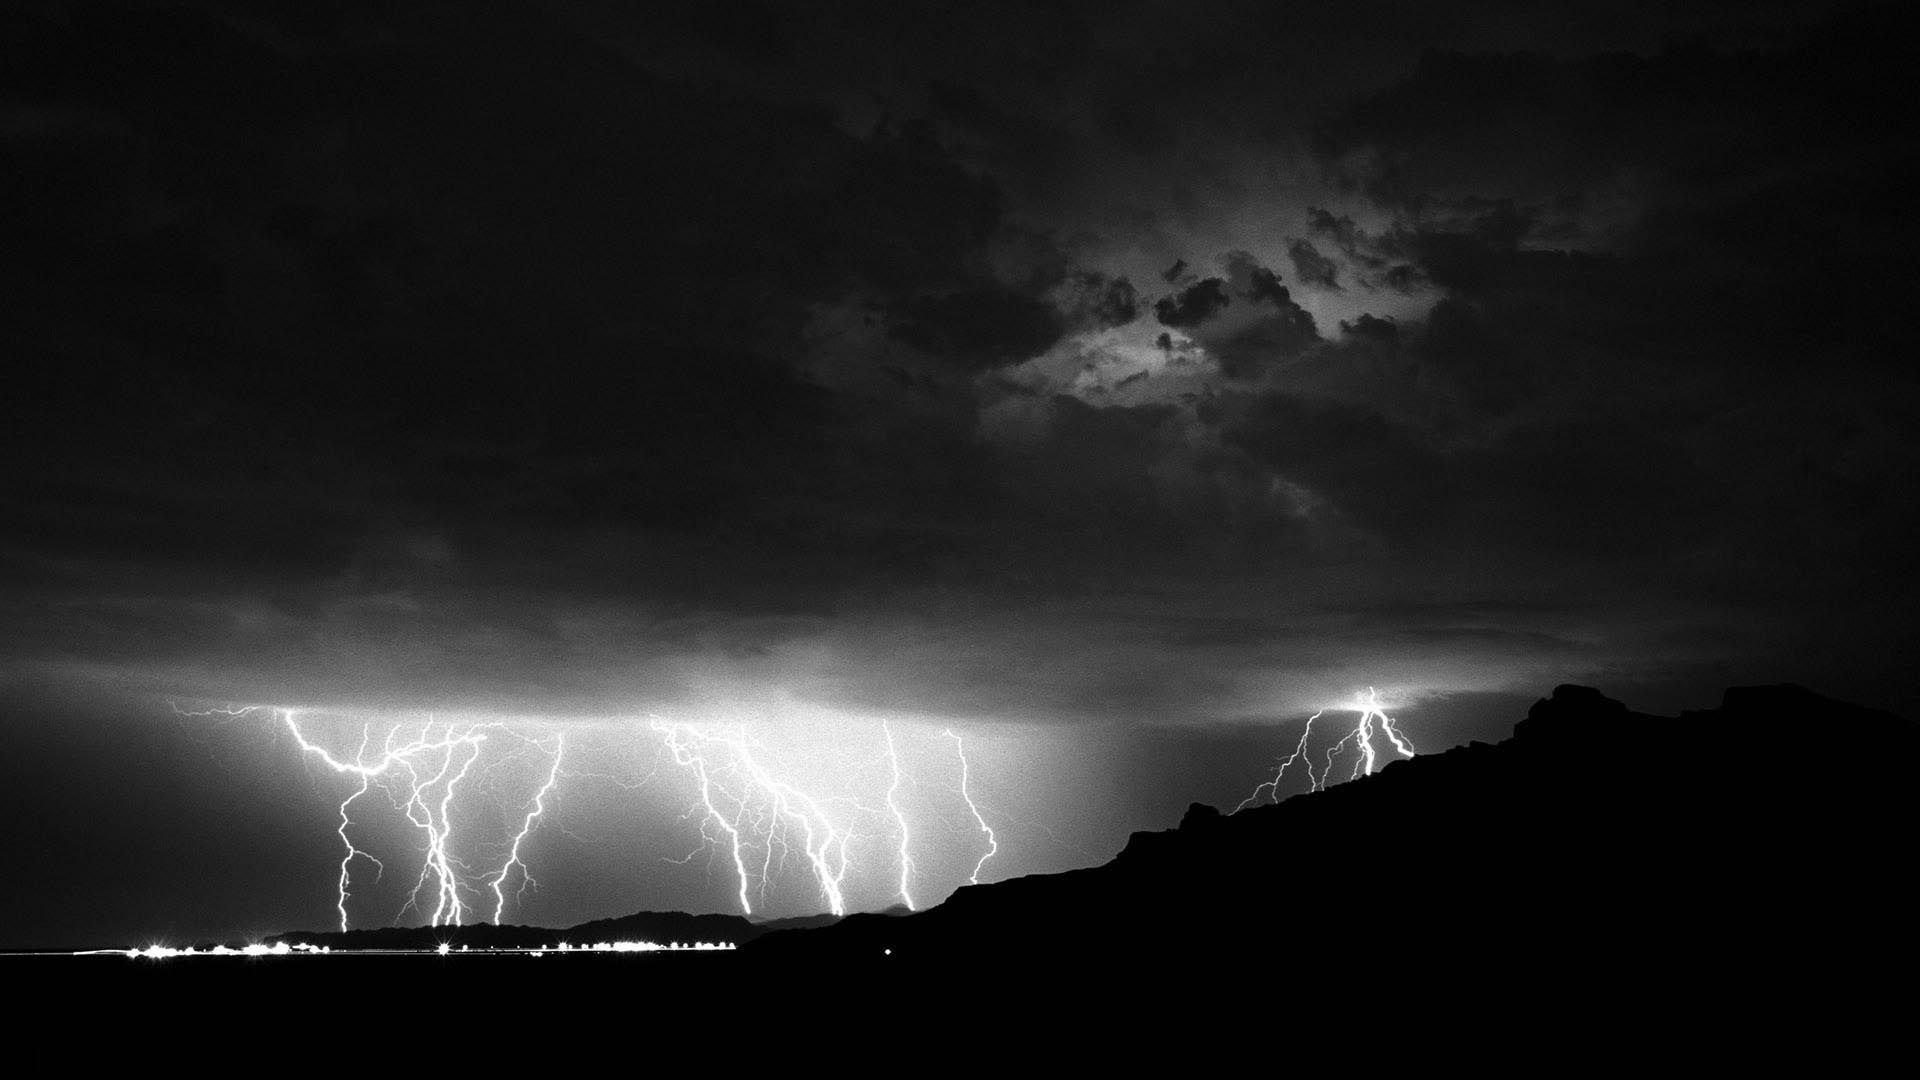 Thunderstorm Wallpapers Lighting Thunder Pictures on the